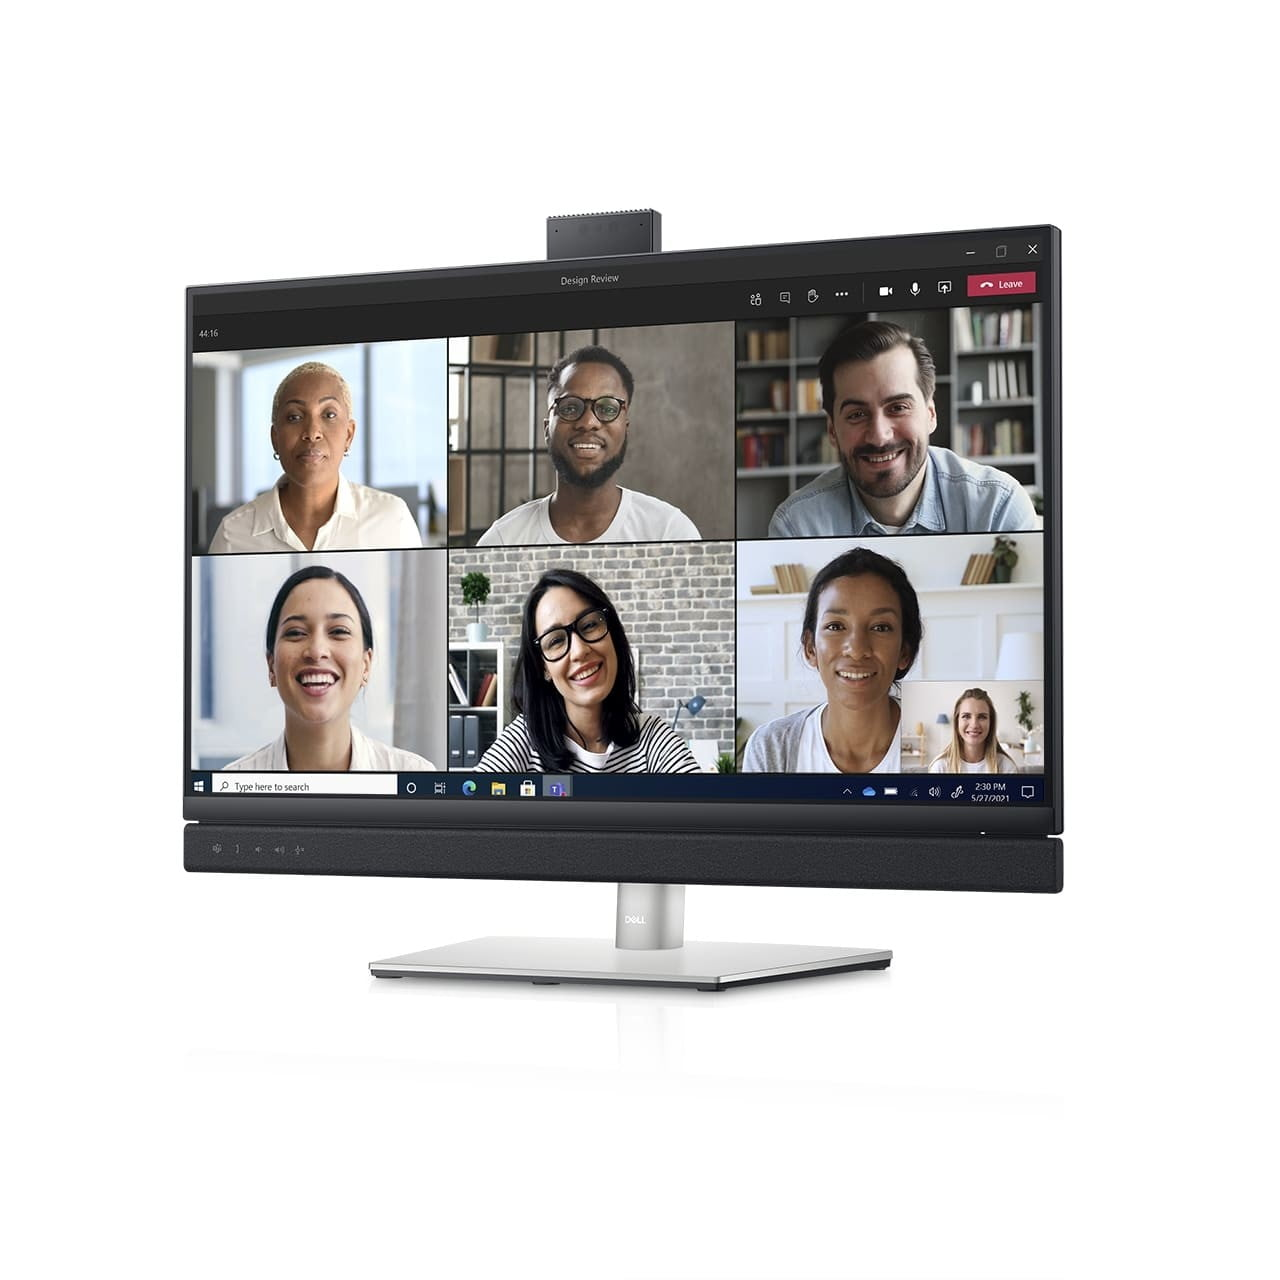 dell refreshes ultrasharp monitors ces 2021 27 video conferencing monitor front right angle screen fill 1